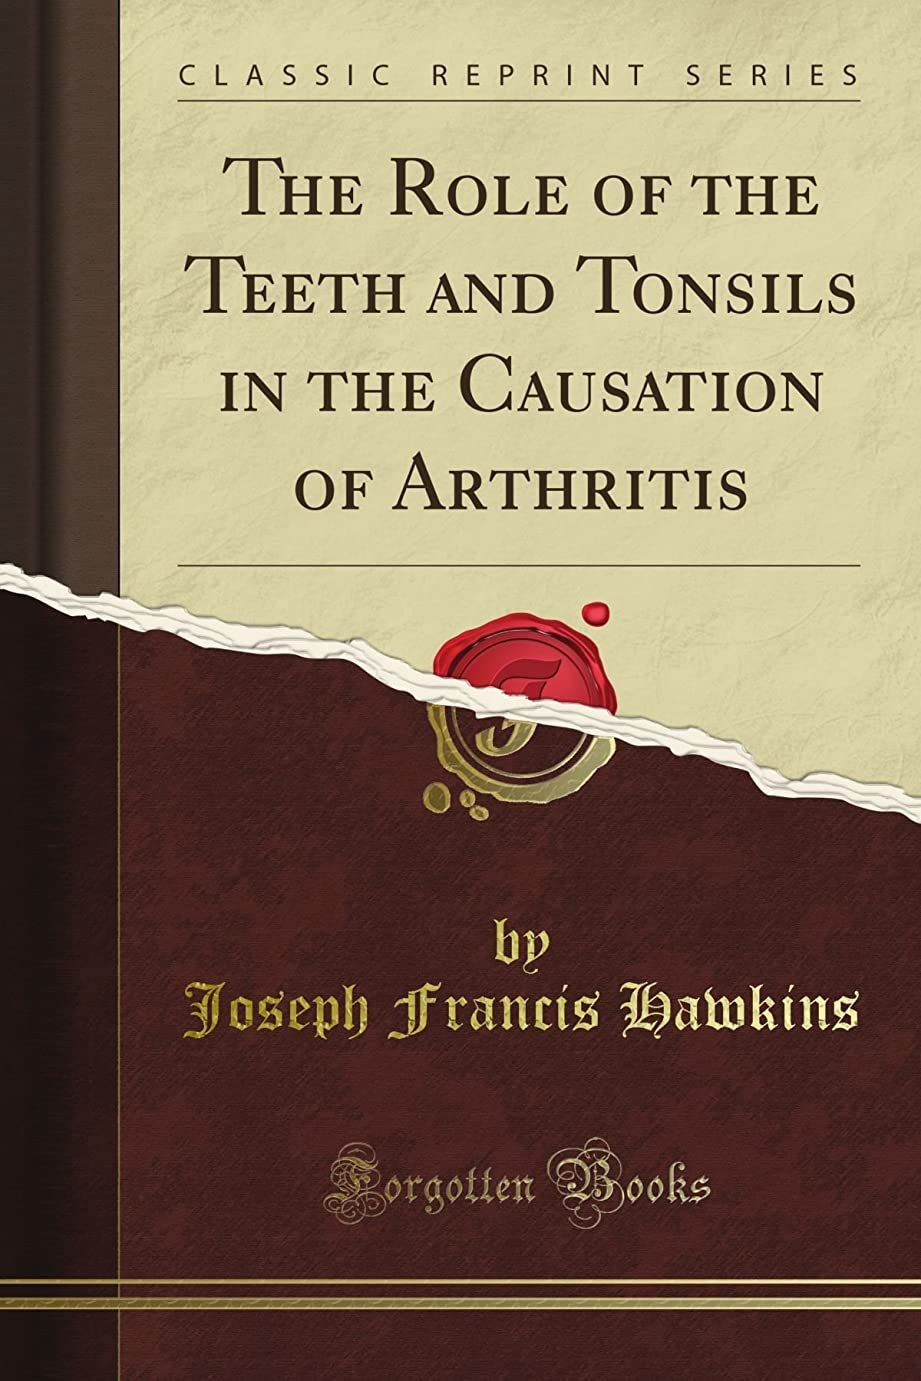 加速度巨人モディッシュThe Role of the Teeth and Tonsils in the Causation of Arthritis (Classic Reprint)